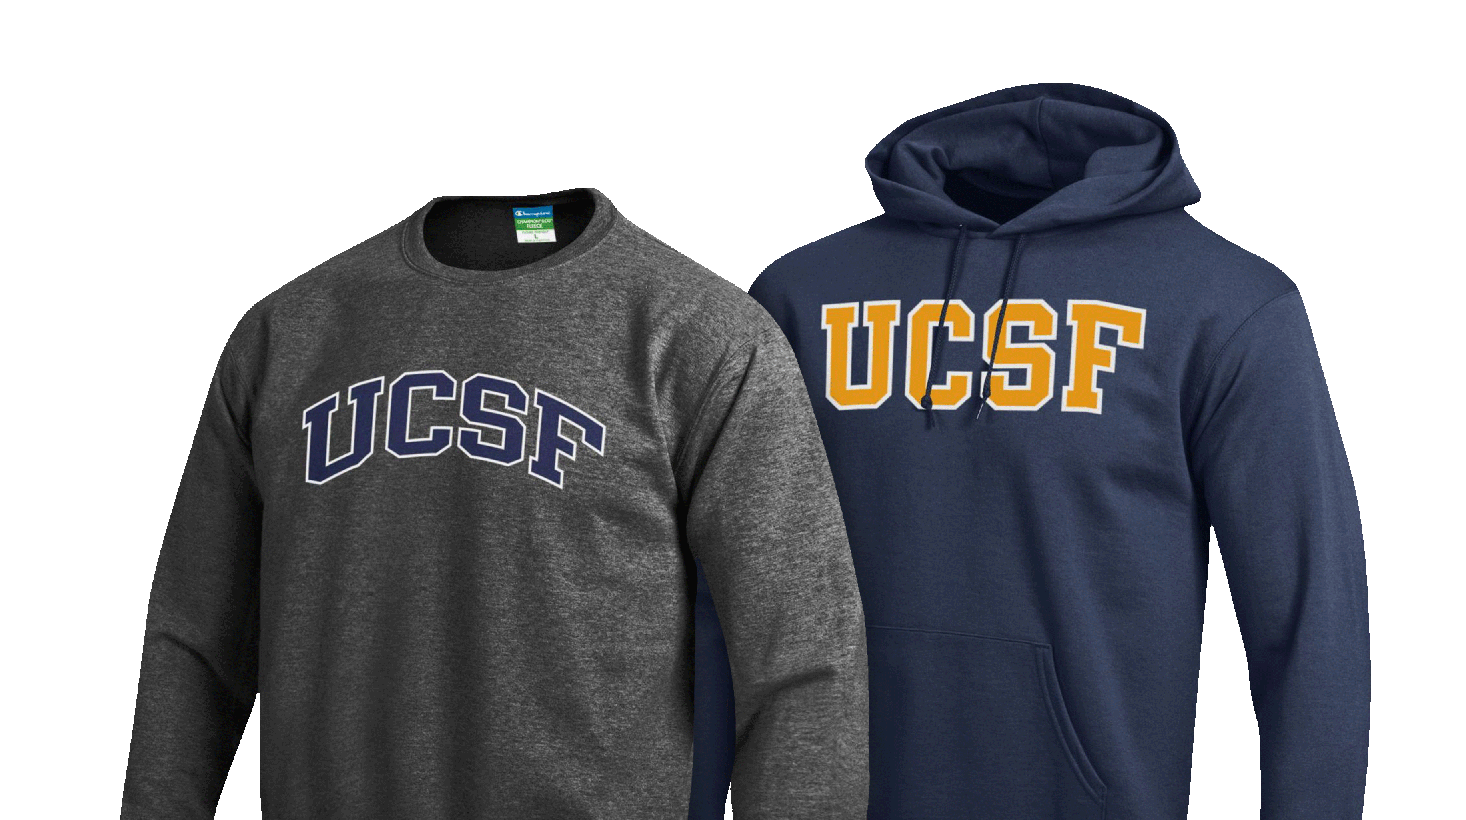 UCSF Campus Store Apparel, Merchandise, & Gifts